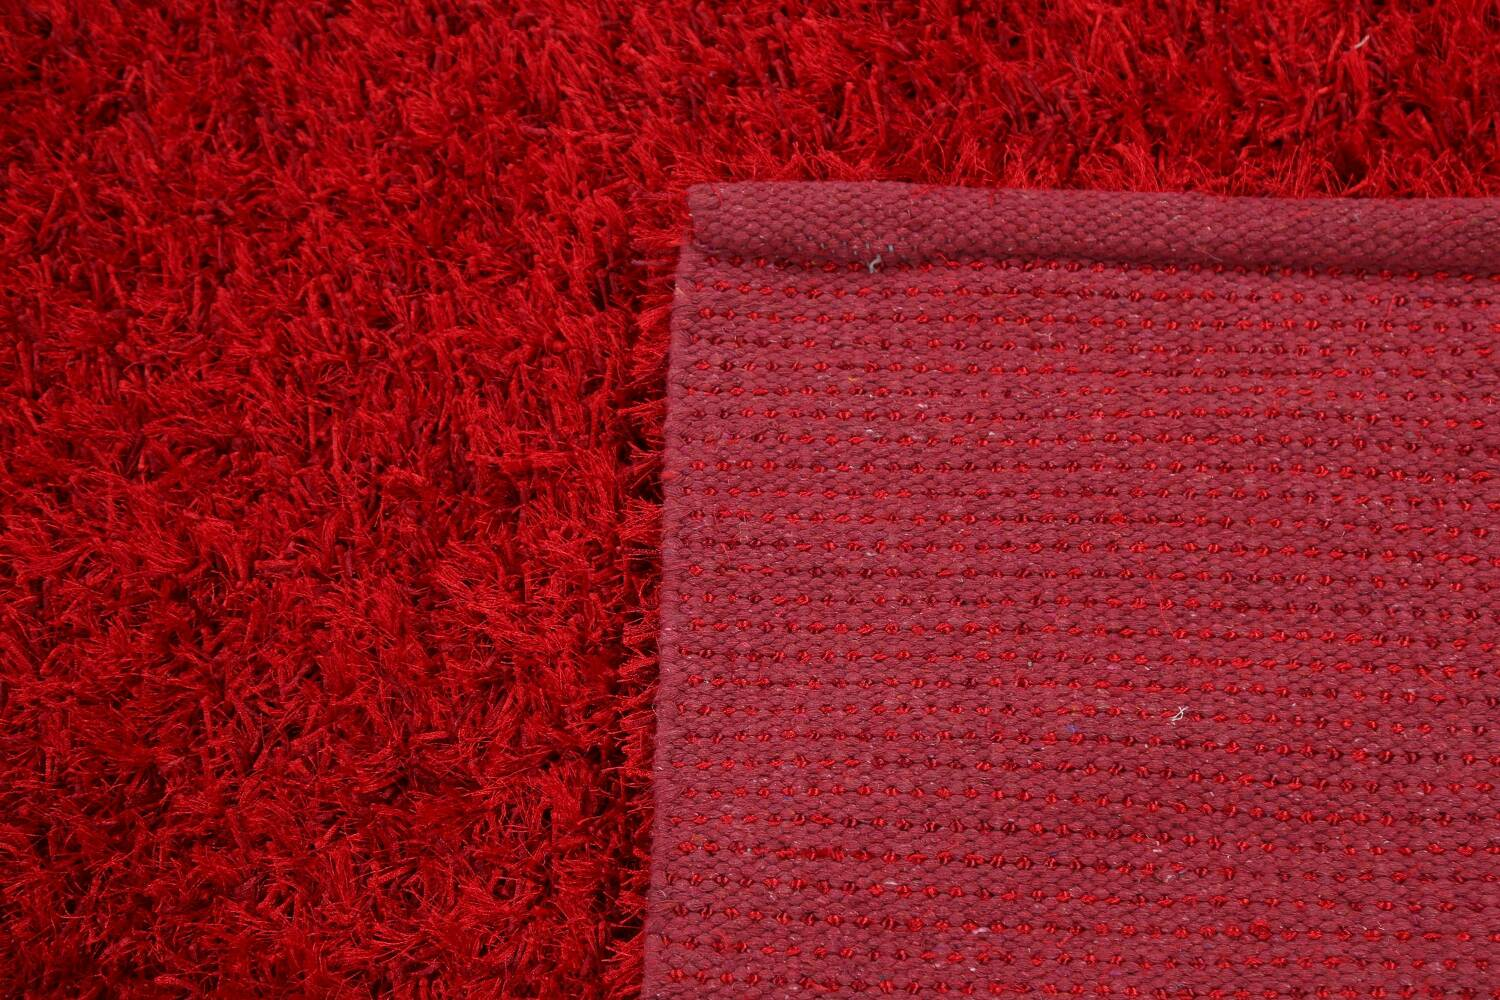 Red Plush Shaggy Area Rug 5x7 image 7